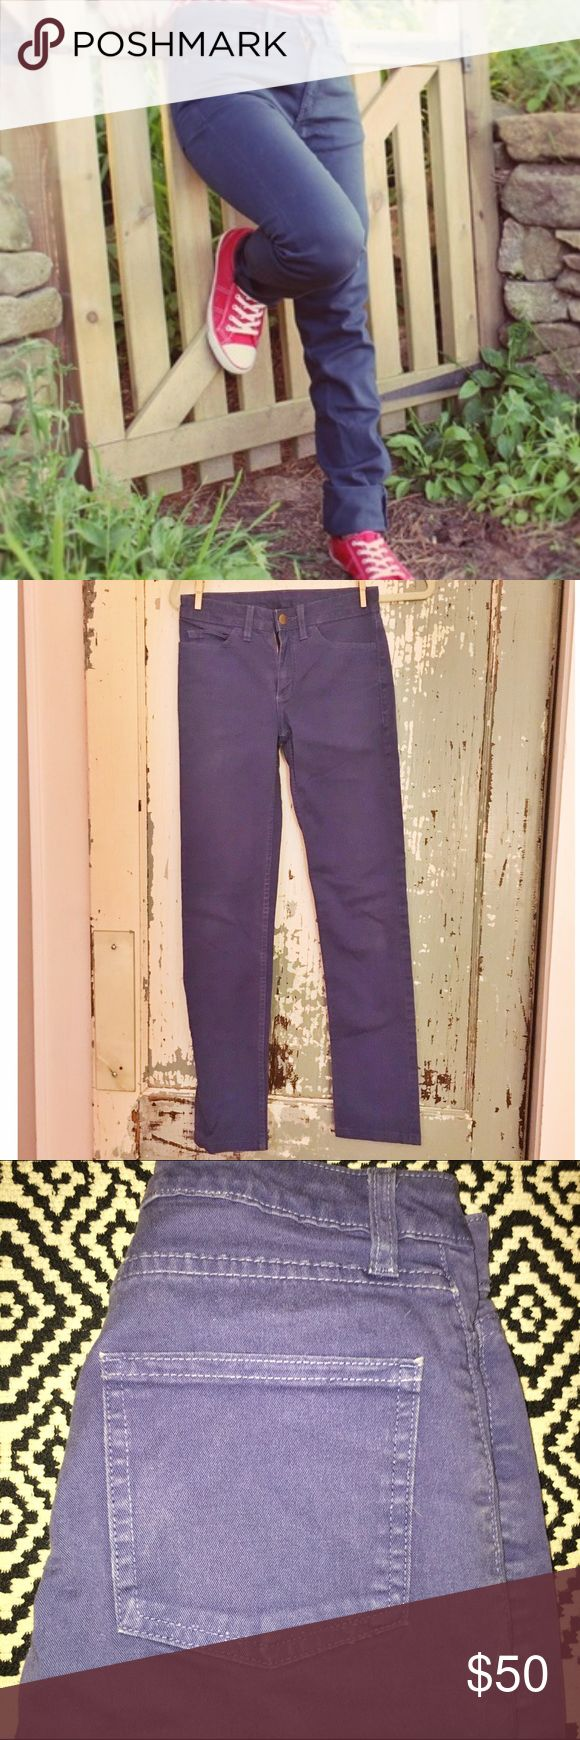 """American Apparel The Slim Slack Lite in BlueViolet Color is hard to capture-- a beautiful, subtle blue with a hint of violet. Mid-weight denim (2% spandex) is soft, comfortable, and breathable.Featuring a mid-rise (8"""") and a straight, slim-fitting leg (29"""" inseam). Leg opening 6"""" at ankle. American Apparel Jeans Straight Leg"""